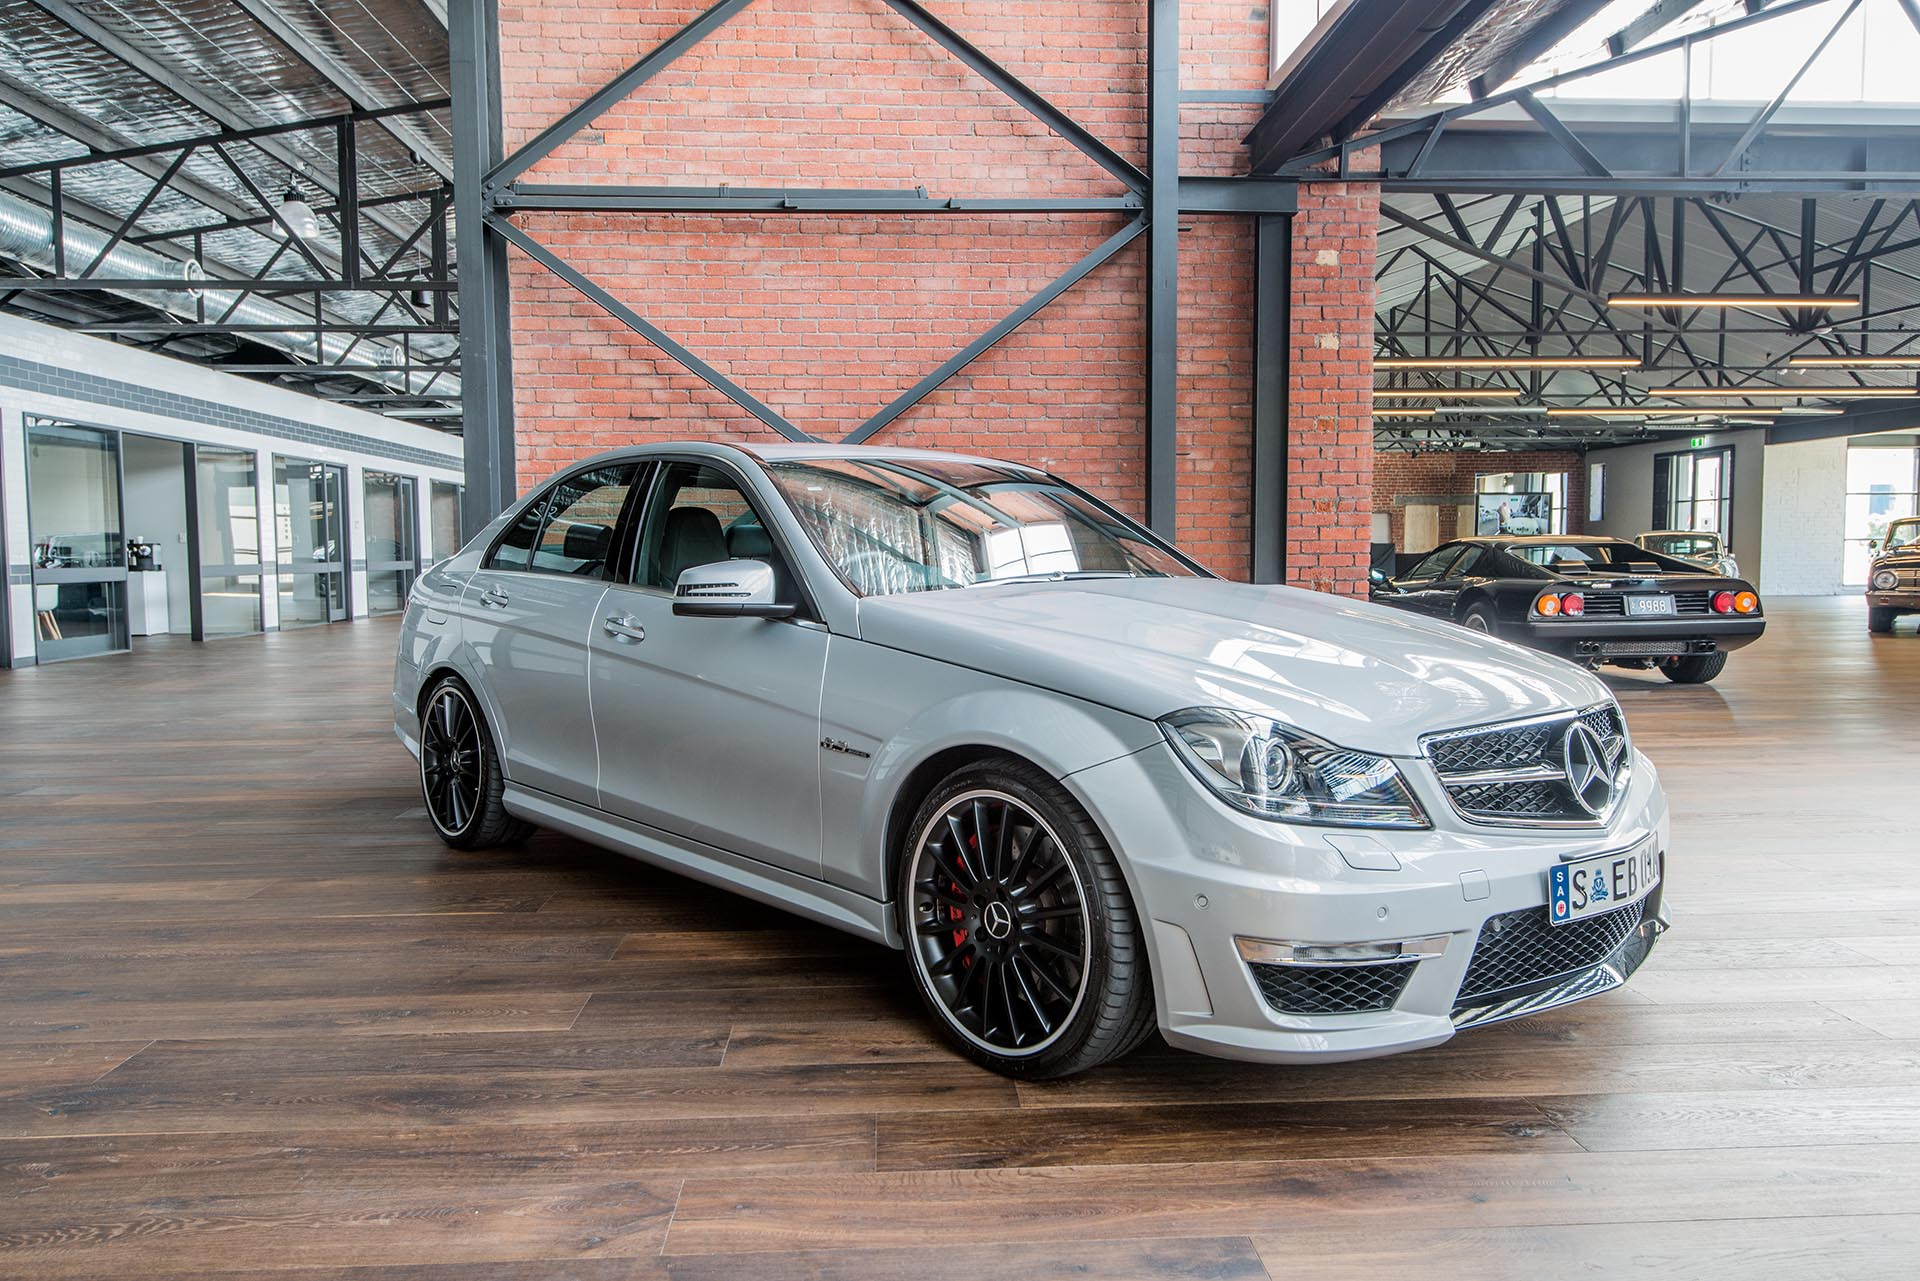 2012 mercedes c63 amg performance richmonds classic sports cars. Black Bedroom Furniture Sets. Home Design Ideas